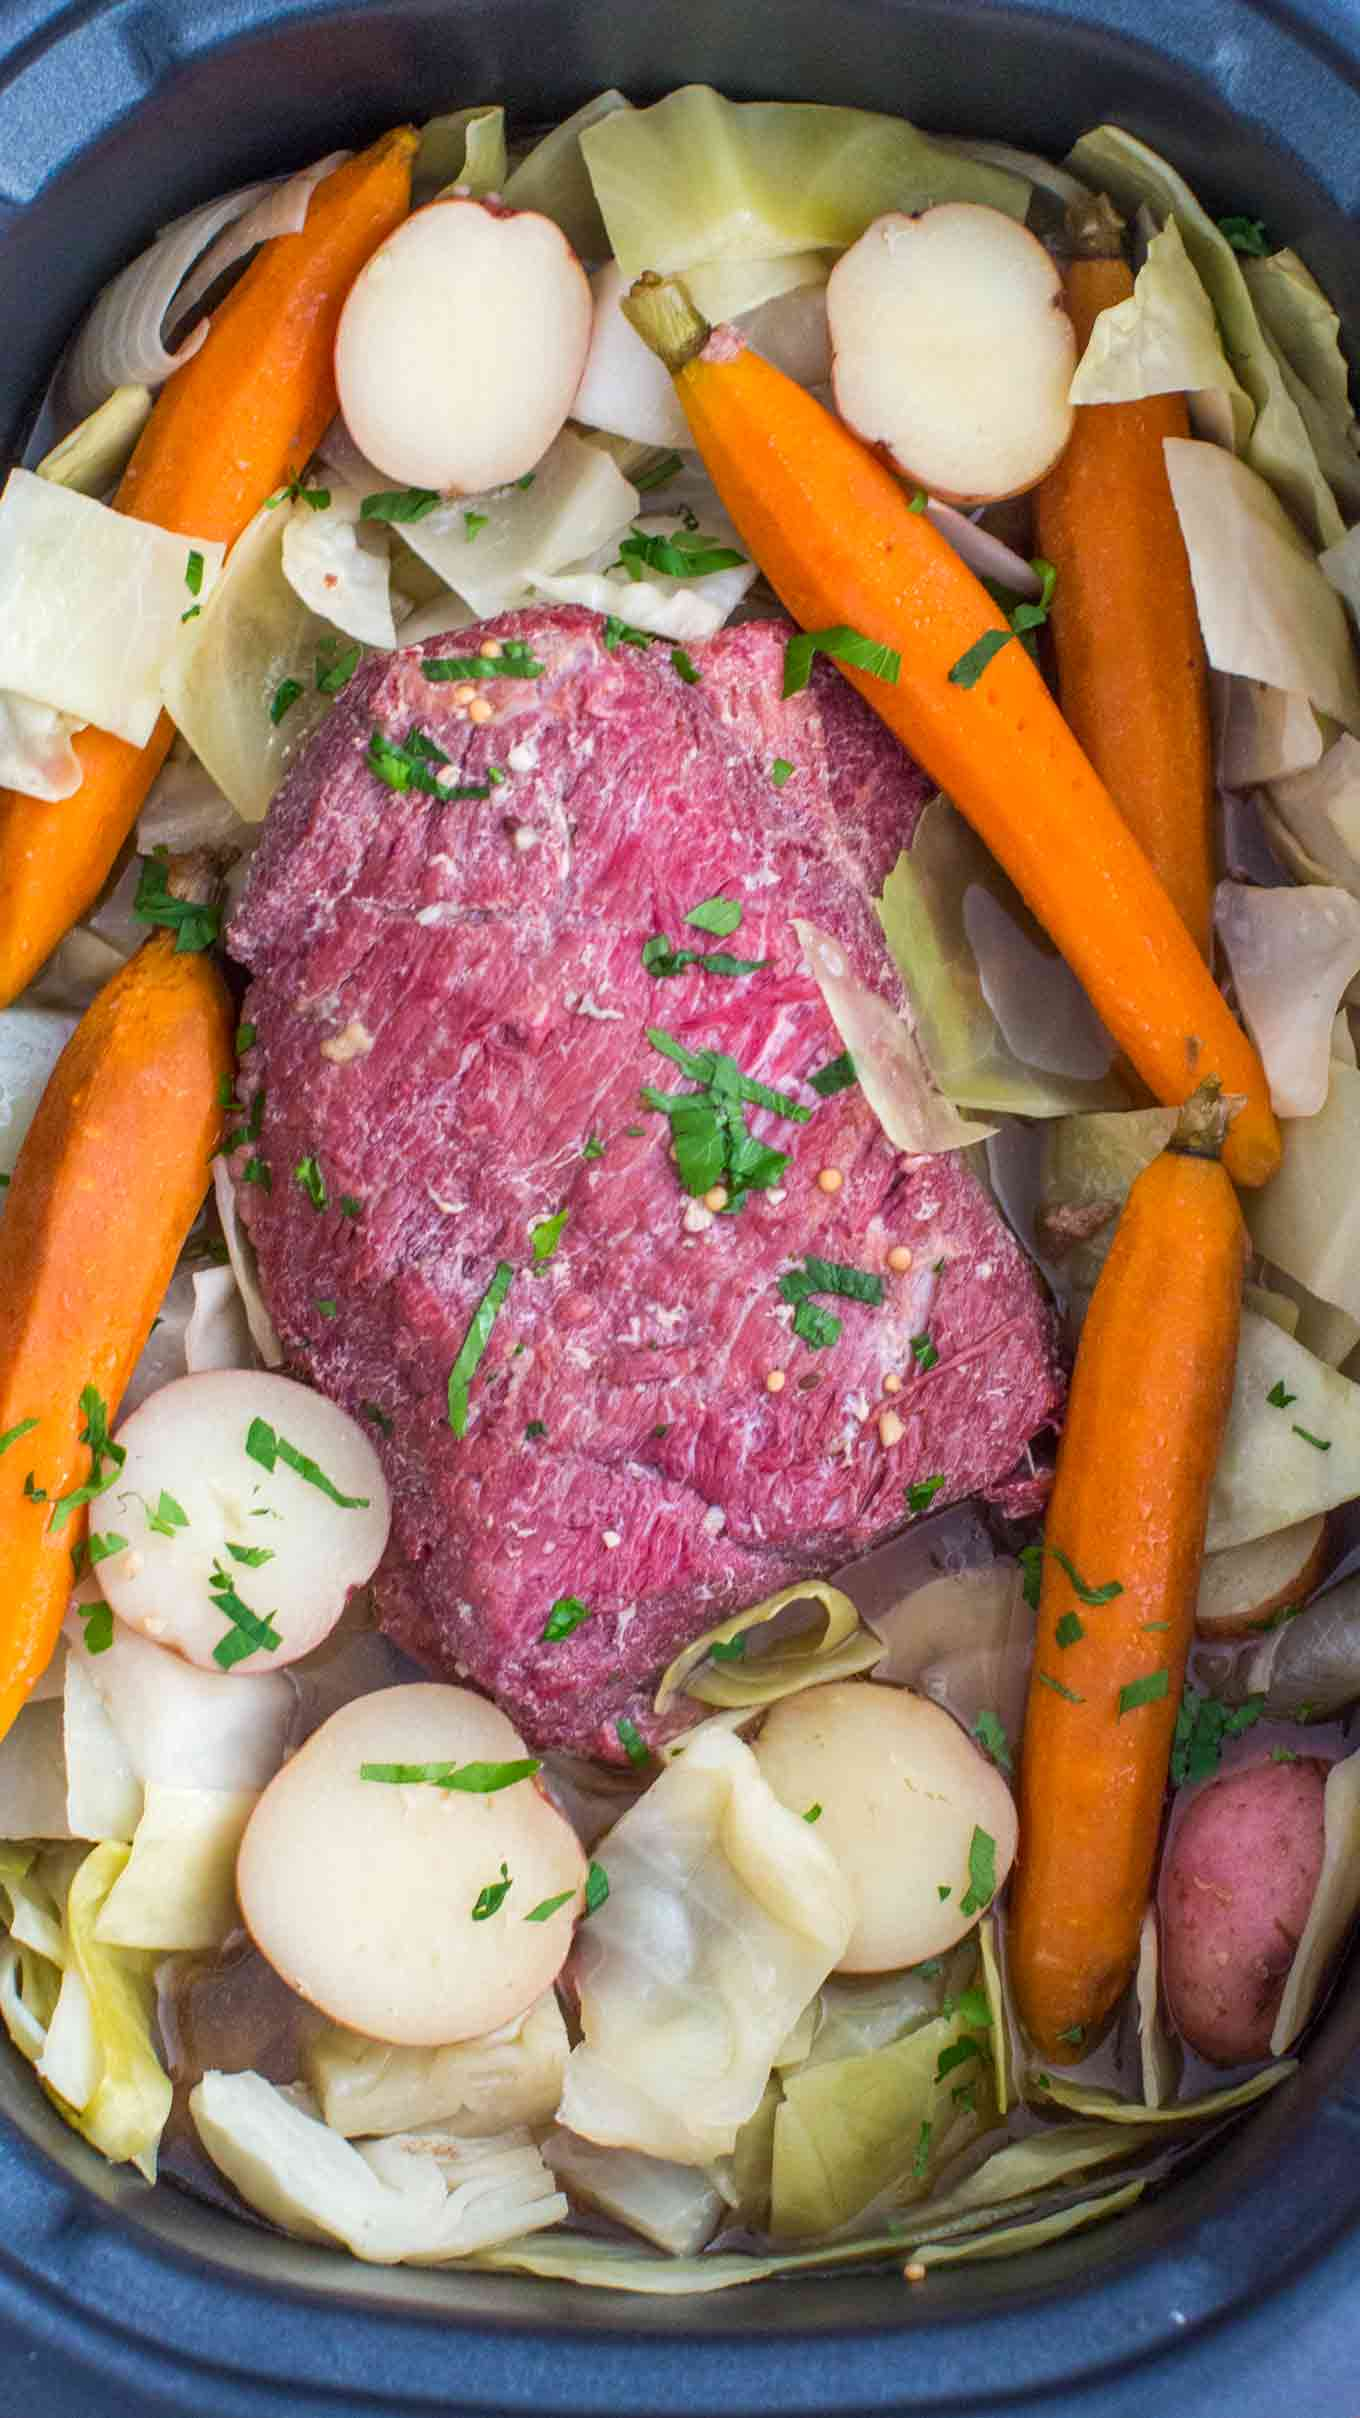 How long to cook 4 lb corned beef in pressure cooker